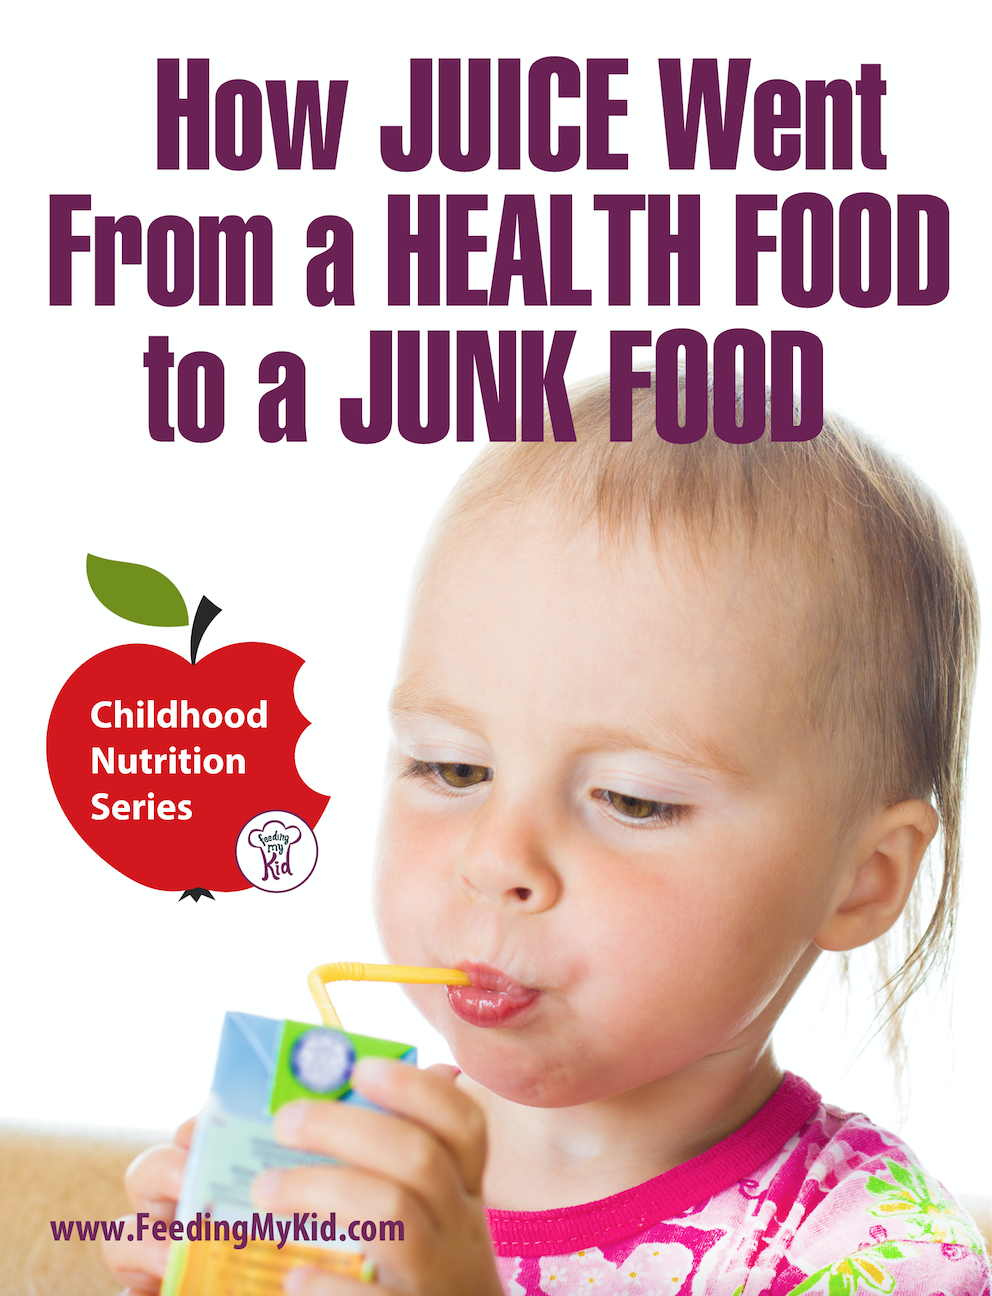 How Juice Went From A Health Food To A Junk Food - Juice manufactures have done an amazing job at positioning fruit juice as a healthy drink for kids and adults. And why wouldn't it be? It's 100% fruit juice. It's all natural. And, we know fruit is healthy. But is it really?